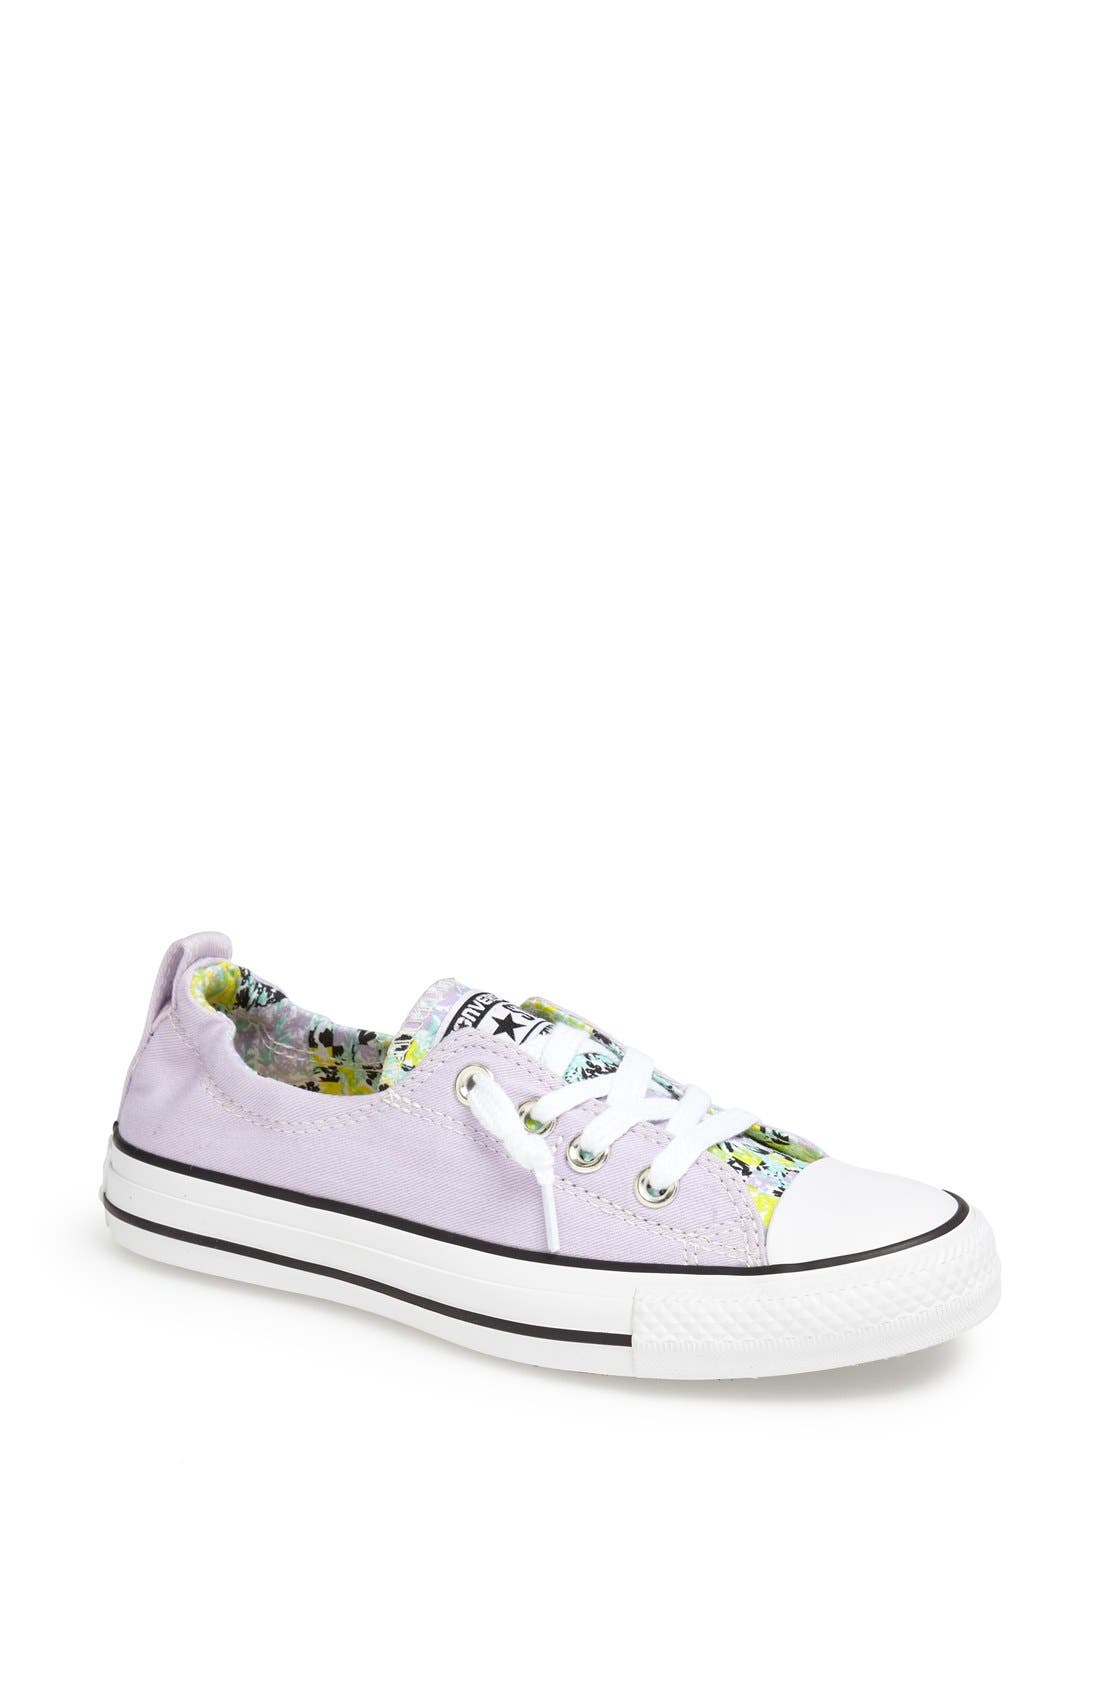 Main Image - Converse Chuck Taylor® All Star® 'Shoreline' Sneaker (Women)